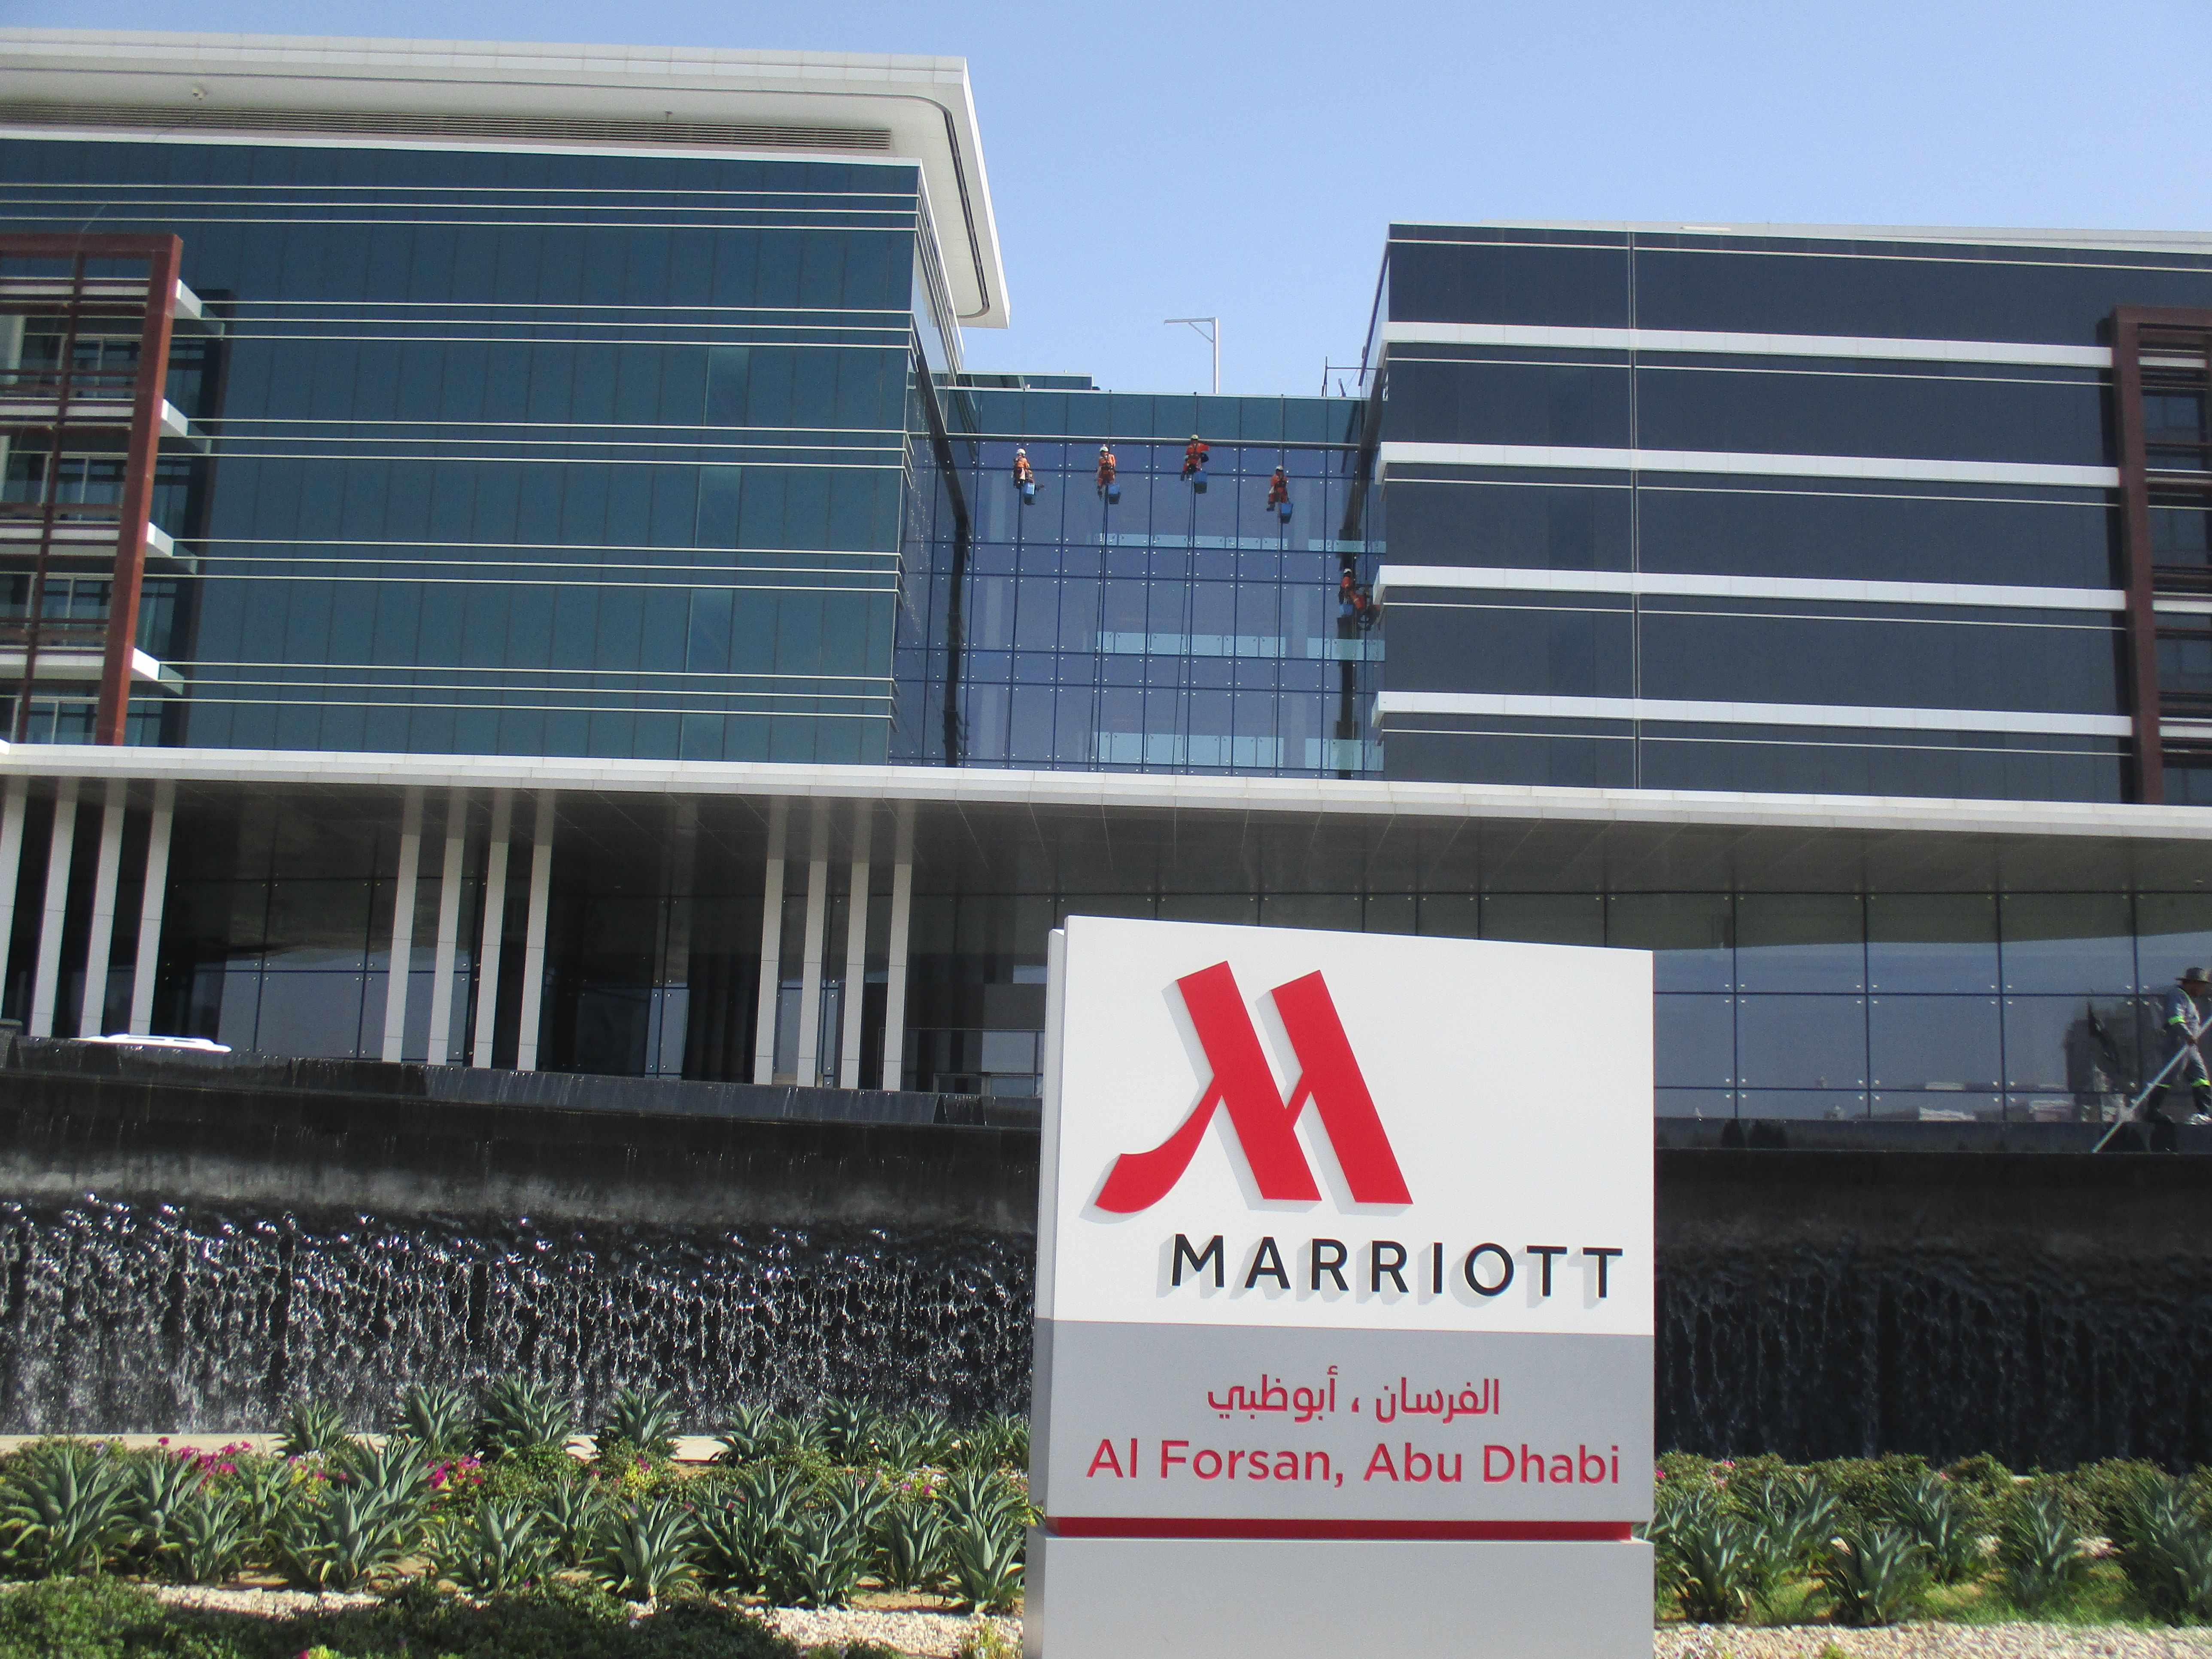 Our newest rope access window cleaning services at MARRIOTT AL